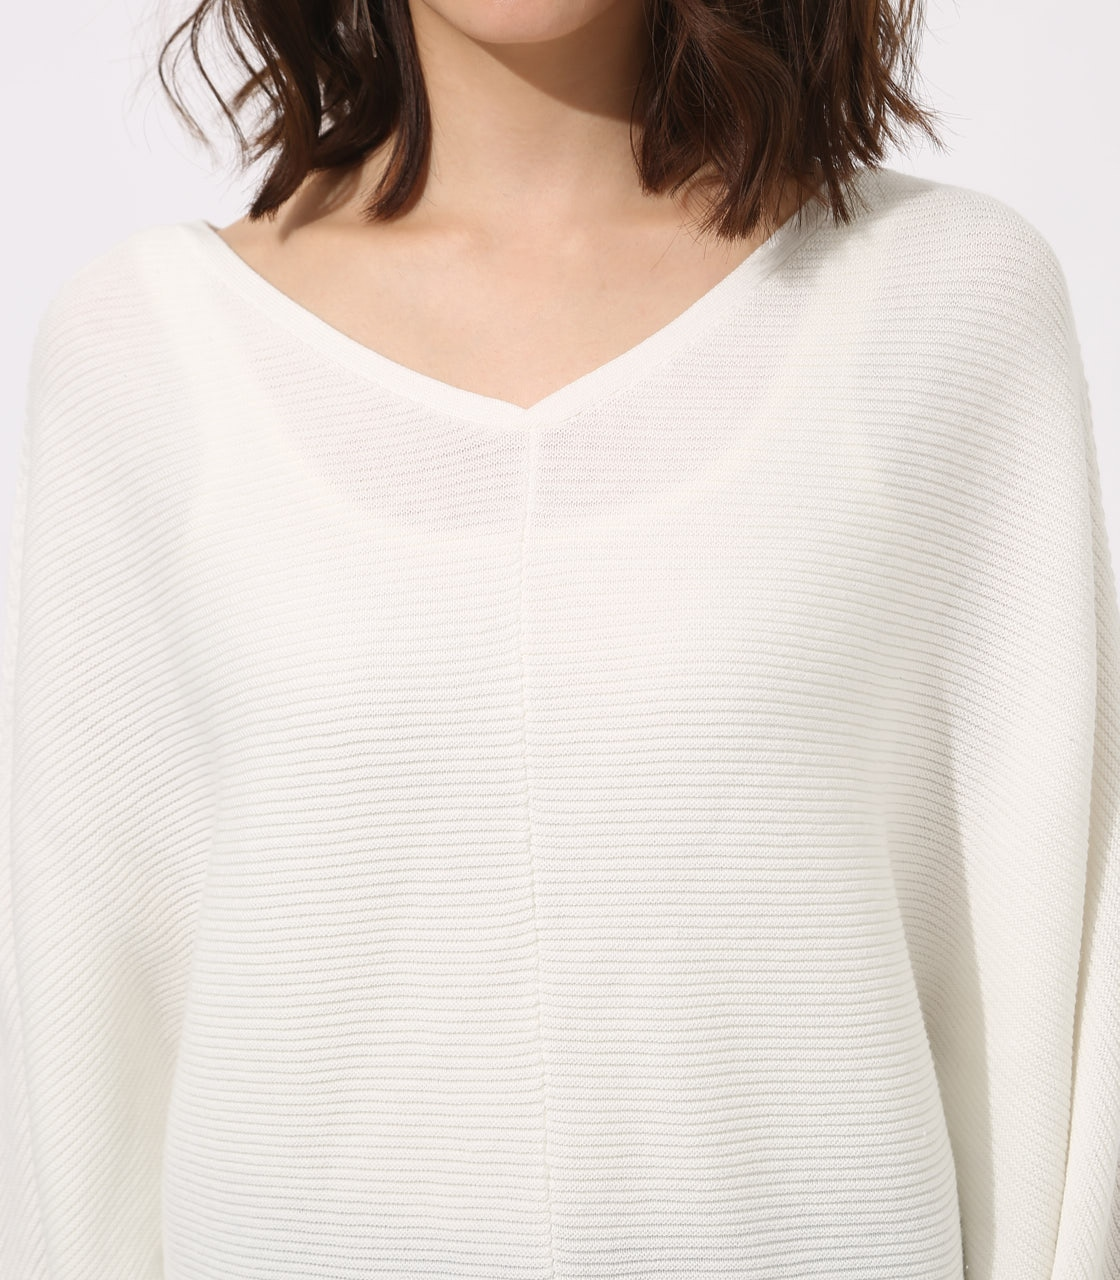 【AZUL BY MOUSSY】2WAY DOLMAN KNIT TOPS 詳細画像 O/WHT 8